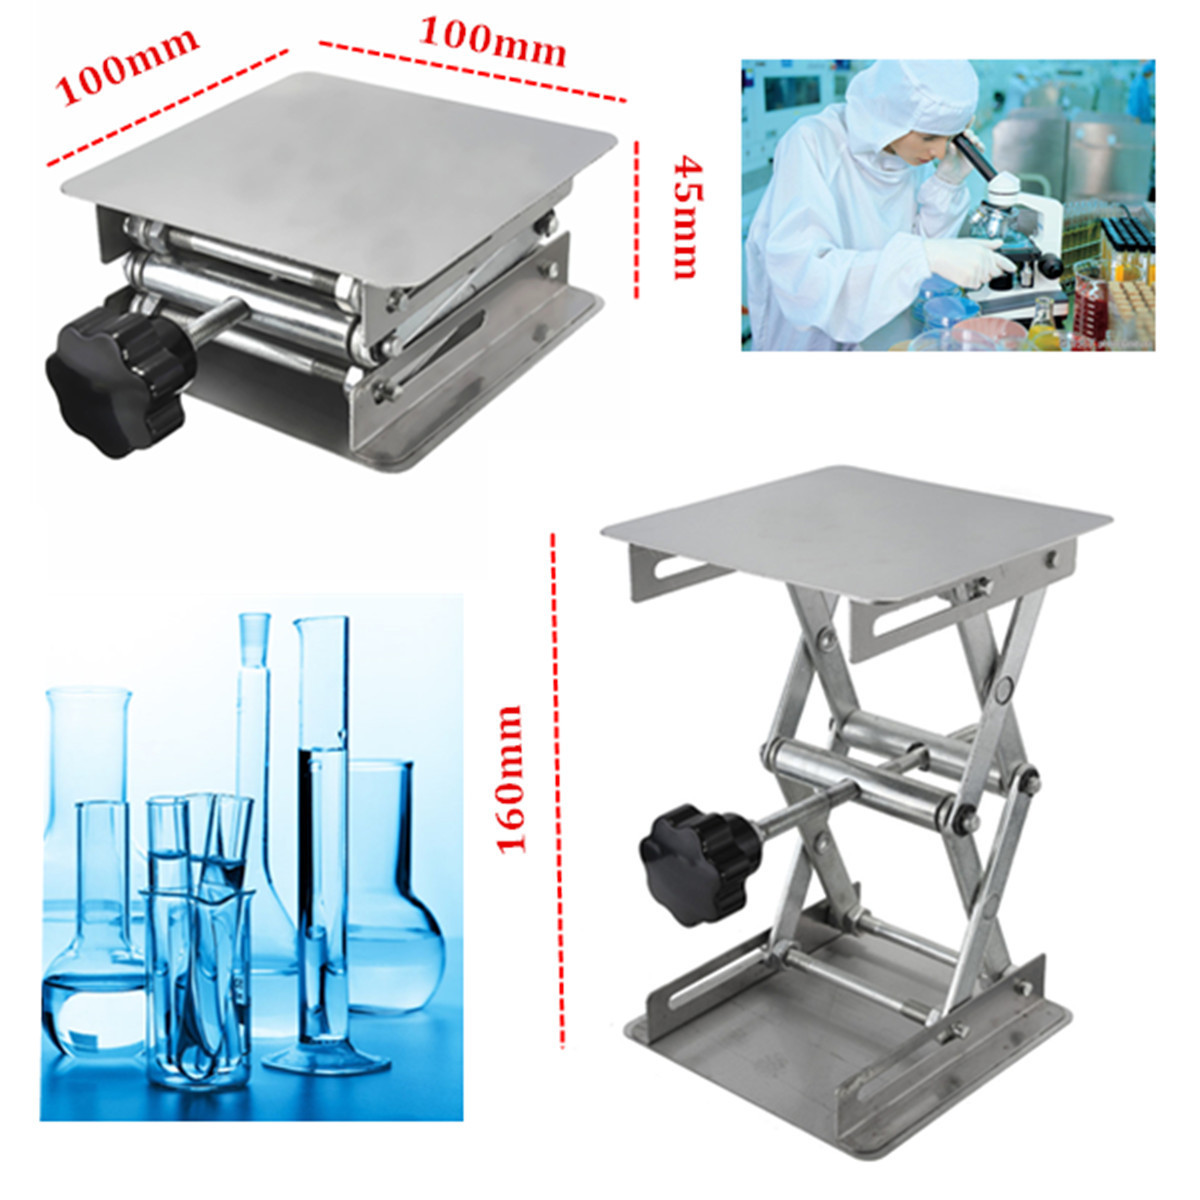 100×100×160mm Stainless steel lifts laboratory lifts manual control Lab Lifting Platforms 4×4 Inch